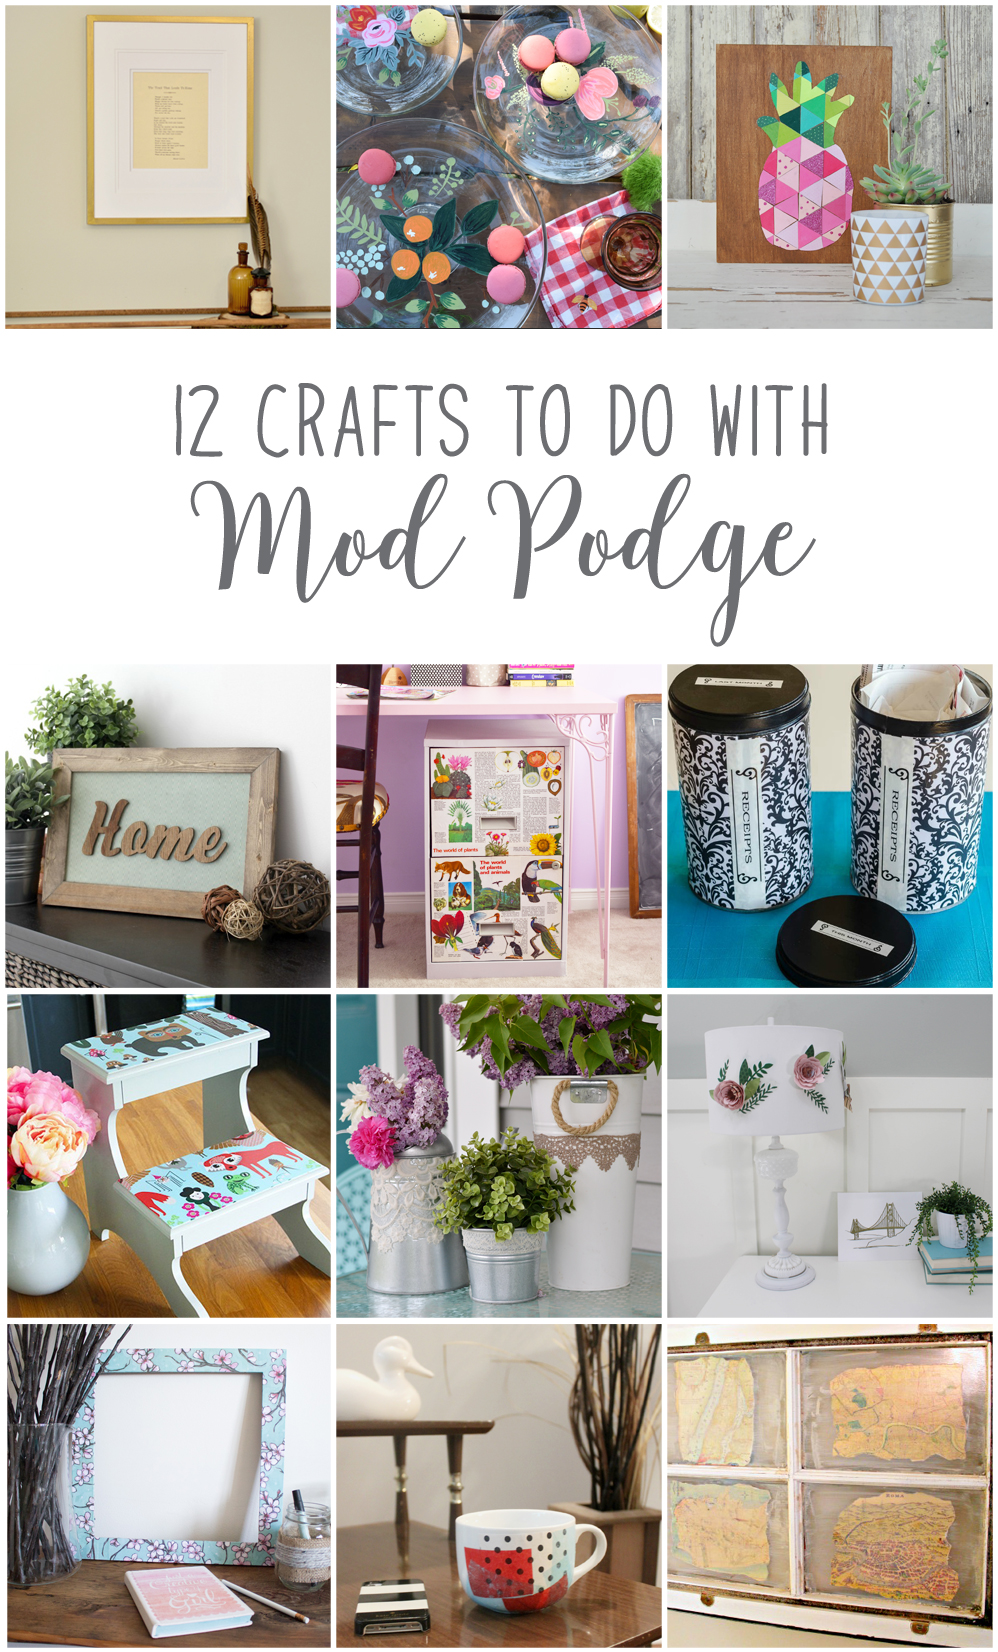 12 Crafts To Do With Mod Podge